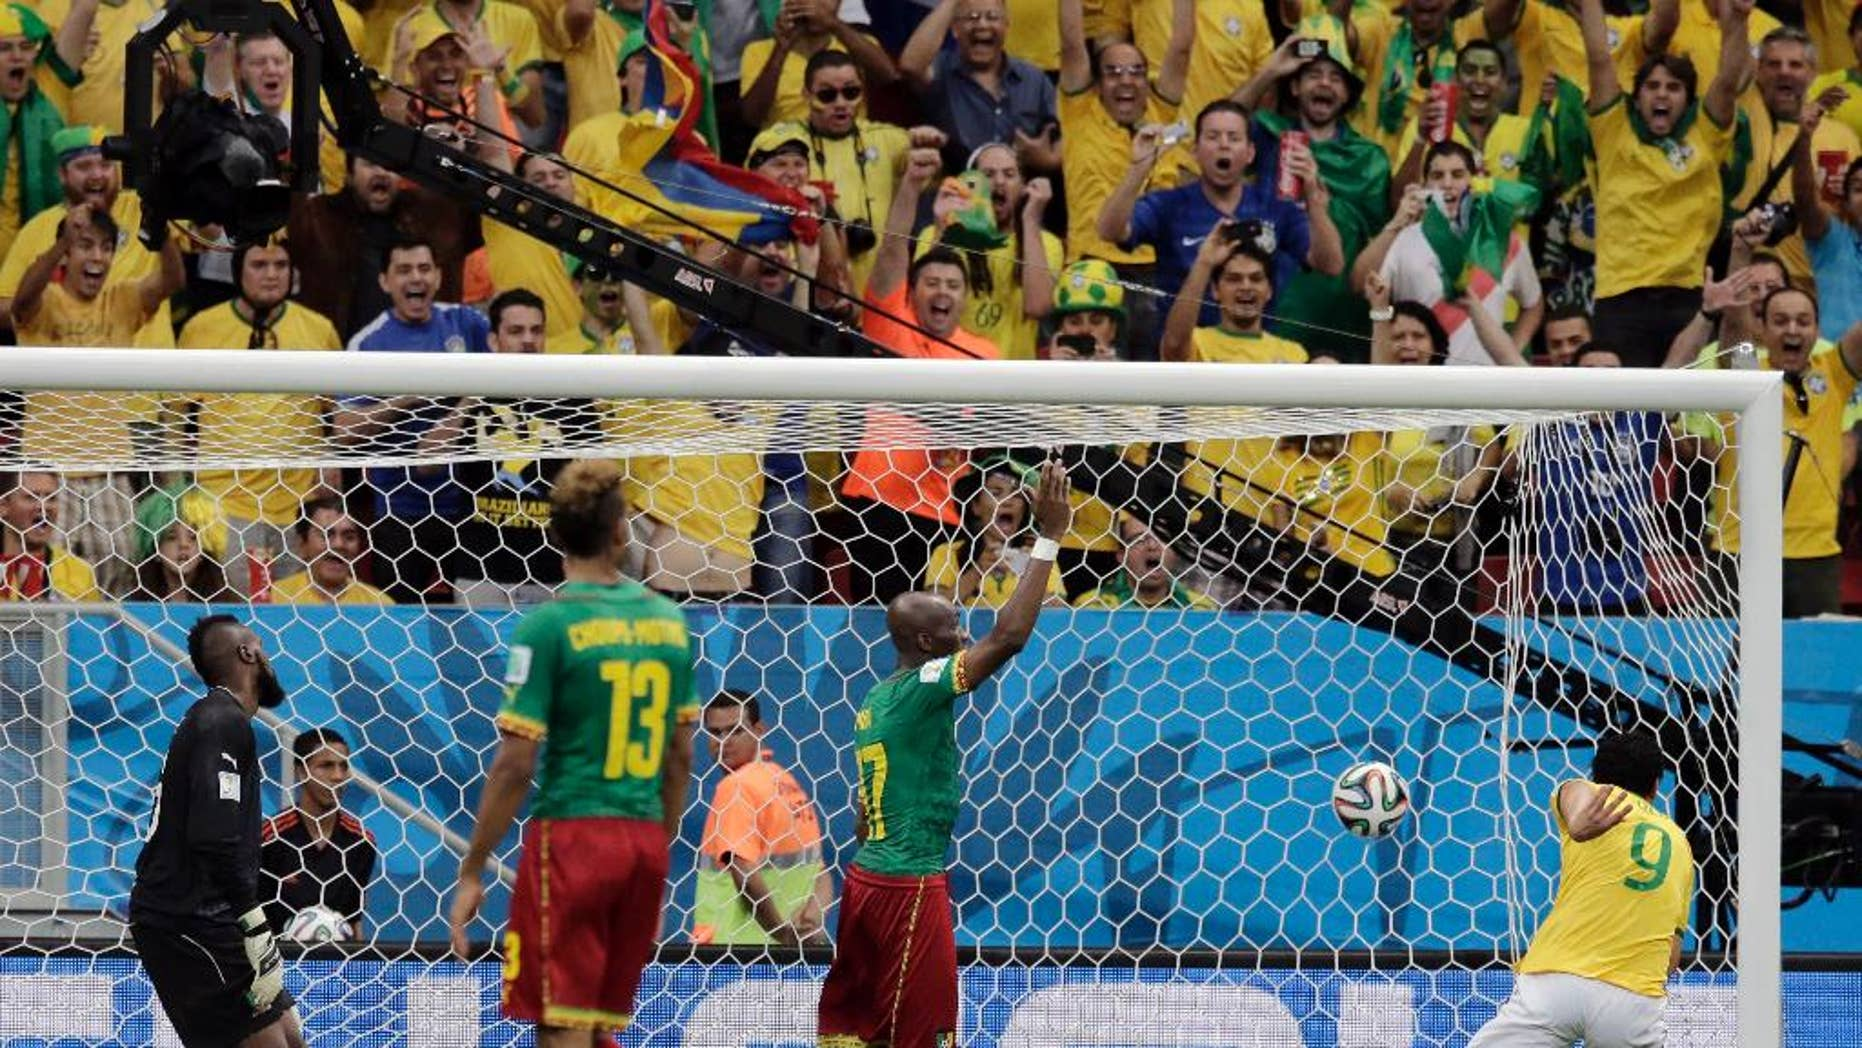 Spectators cheer as Brazil's Fred (9) scores his side's third goal against Cameroon's goalkeeper Charles Itandje during the group A World Cup soccer match between Cameroon and Brazil at the Estadio Nacional in Brasilia, Brazil, Monday, June 23, 2014. (AP Photo/Bernat Armangue)